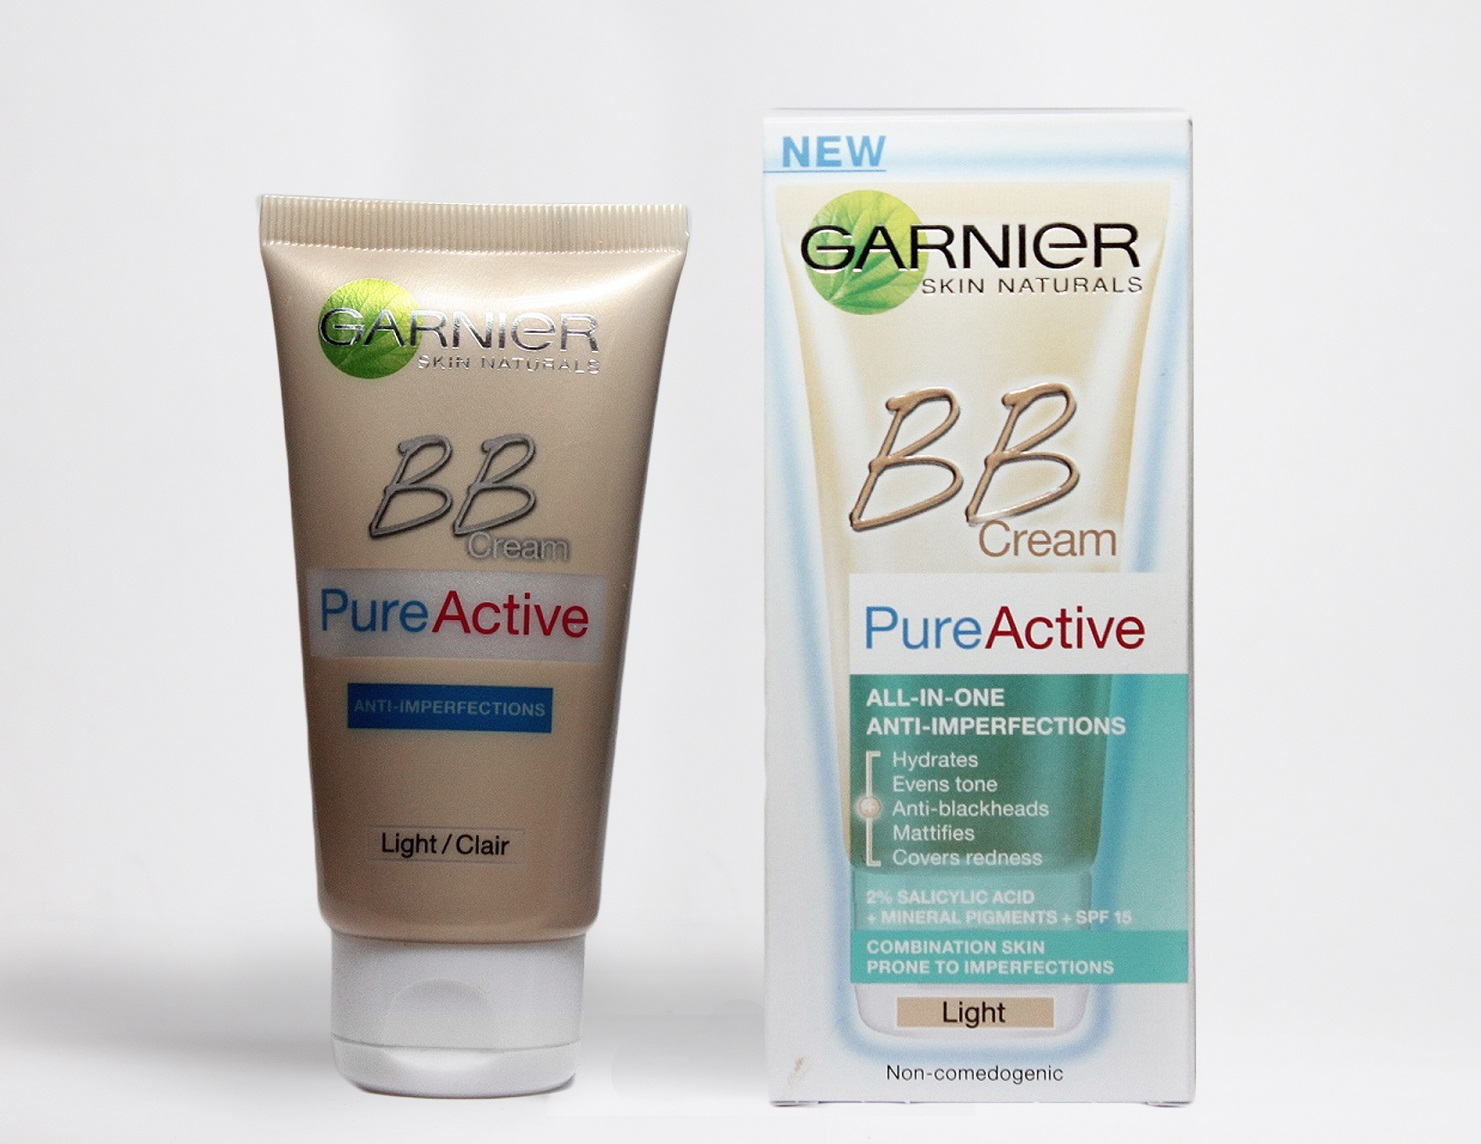 1 2 Combo For Oily Skin Pacific Bella Garnier Pure Active Acne Care Whitening Cream 20ml Sell This Bb Here In The Philippines Through A Physical Store So I Somewhat Lost Hope But Then Saw Scrub